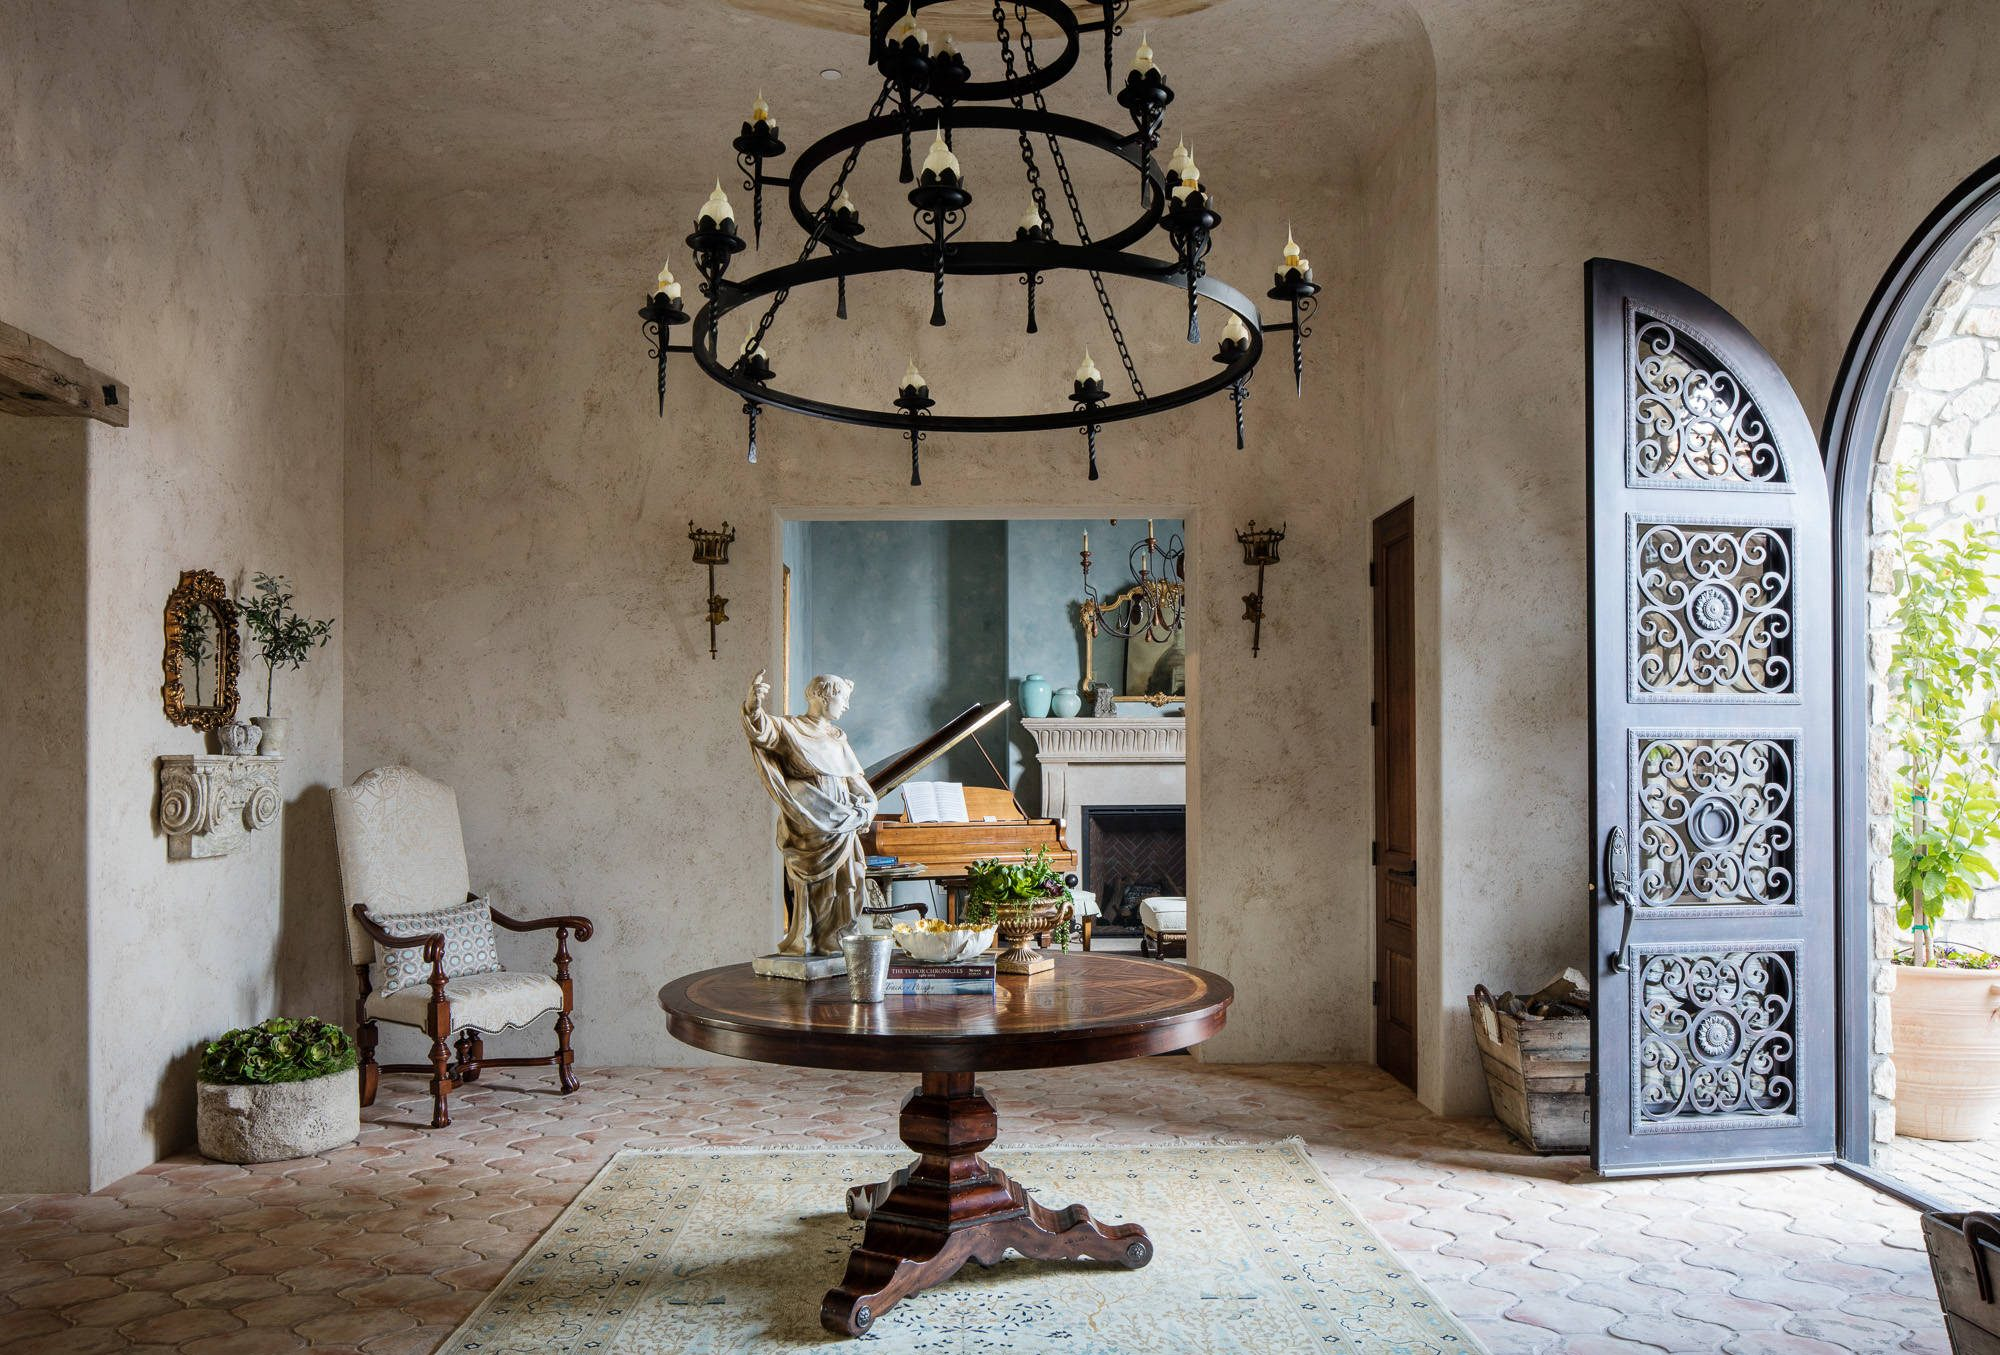 1355 #5F4D3B 16 Uplifting Mediterranean Entry Hall Designs That Will Welcome You  picture/photo Mediterranean Entry Doors 44692000